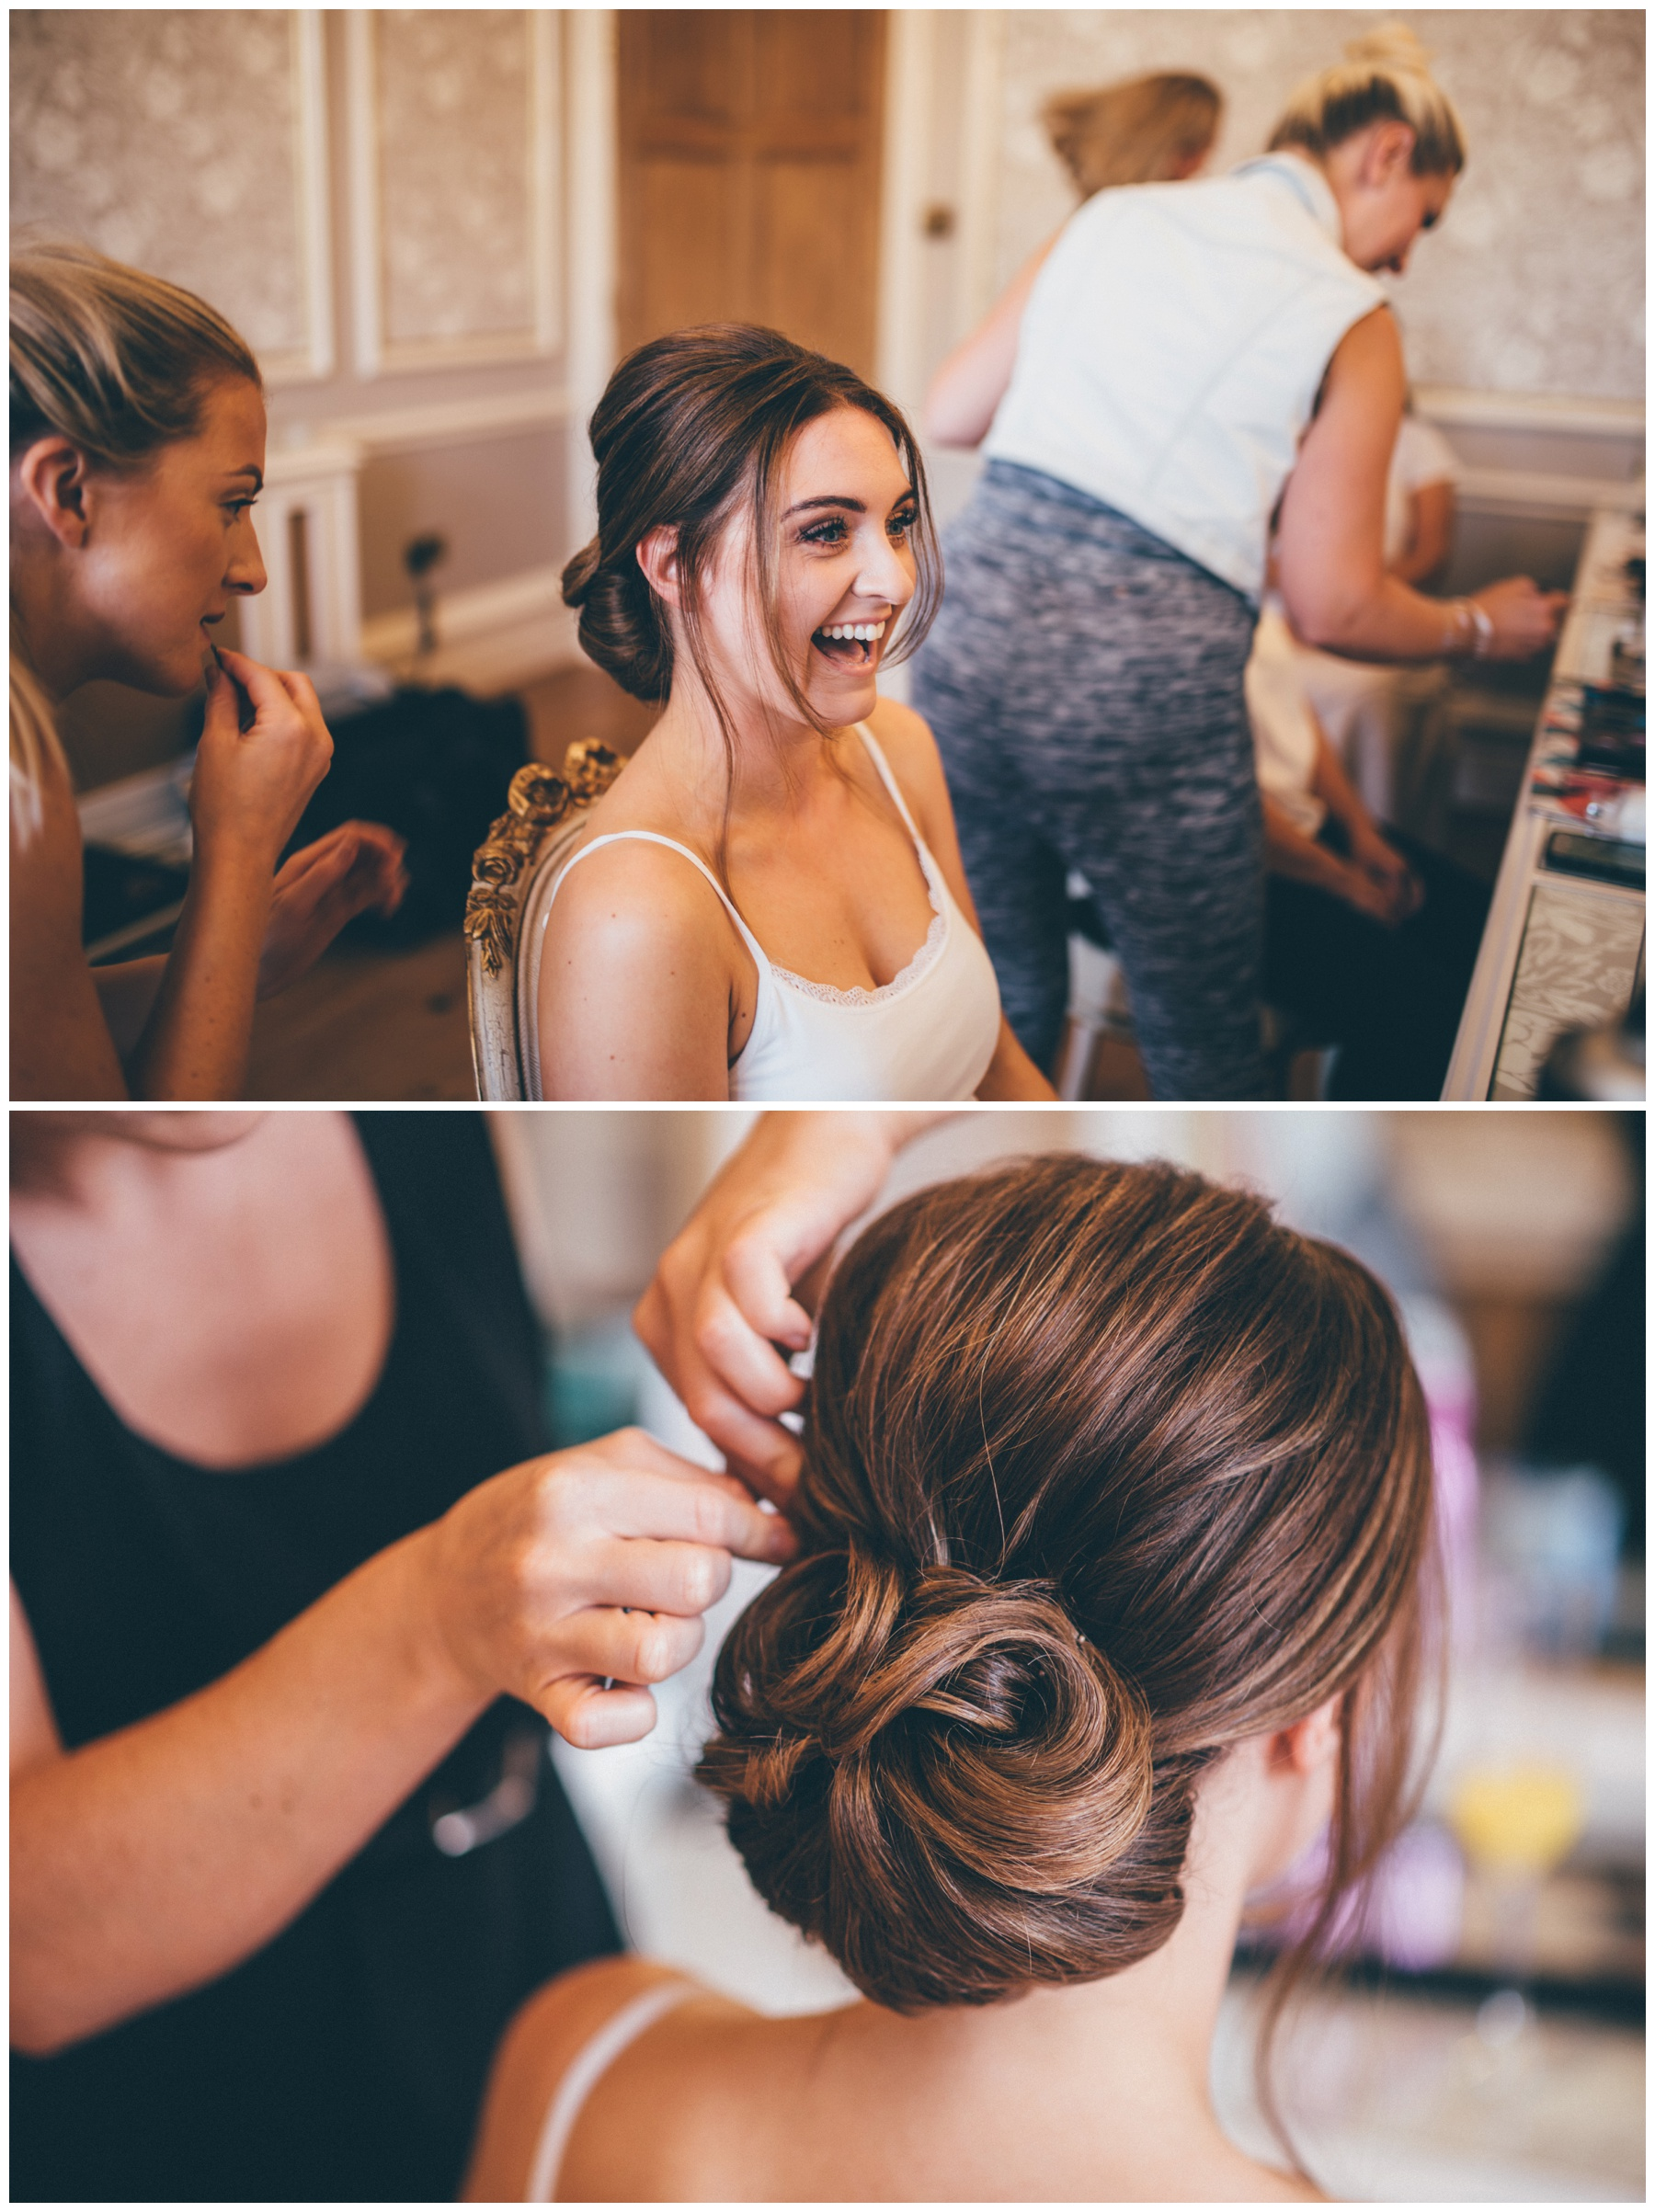 Beautiful bride getting her wedding make-up done in the bridal suite at Tilstone House in Tarporley, Cheshire.